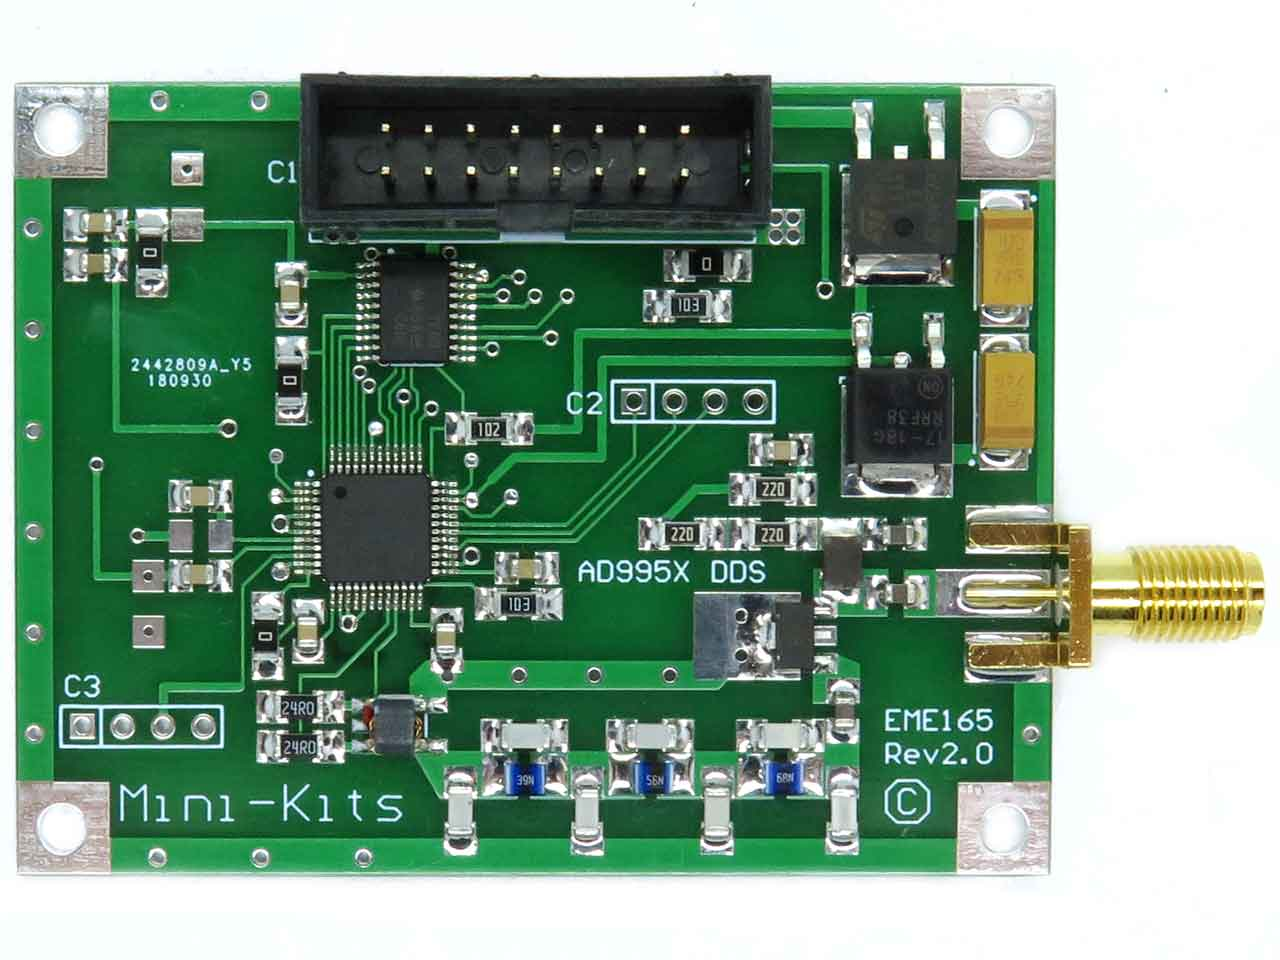 Eme165 R2 Dds Synthesizer Wire Up The Voltage Divider Circuit Shown Below On Your Board Pcb Top View